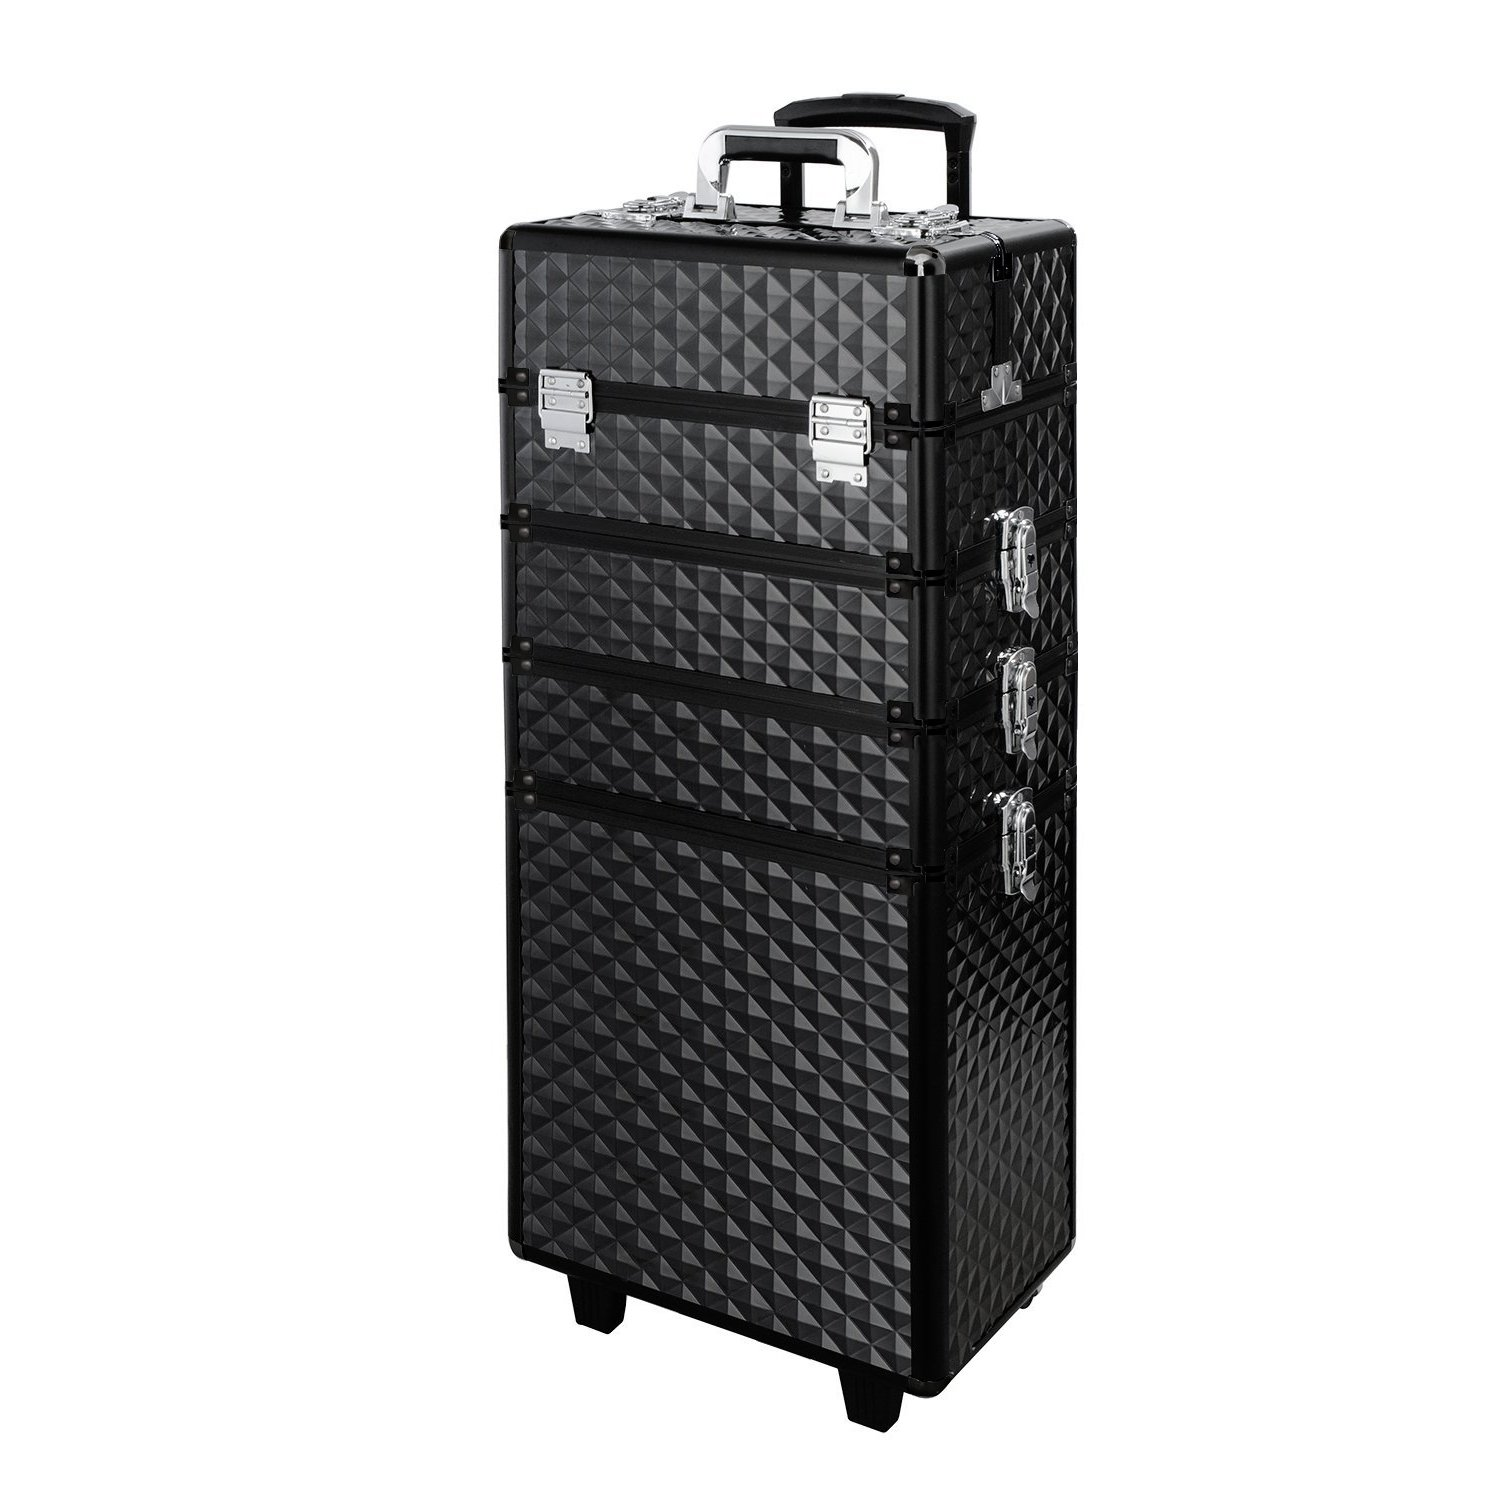 Qivange Makeup Train Case,4 in 1 Professional Rolling Makeup Trolley Case Aluminum Artists Jewelry Cosmetic Storage Case/w 2 Wheels(Diamond Black)